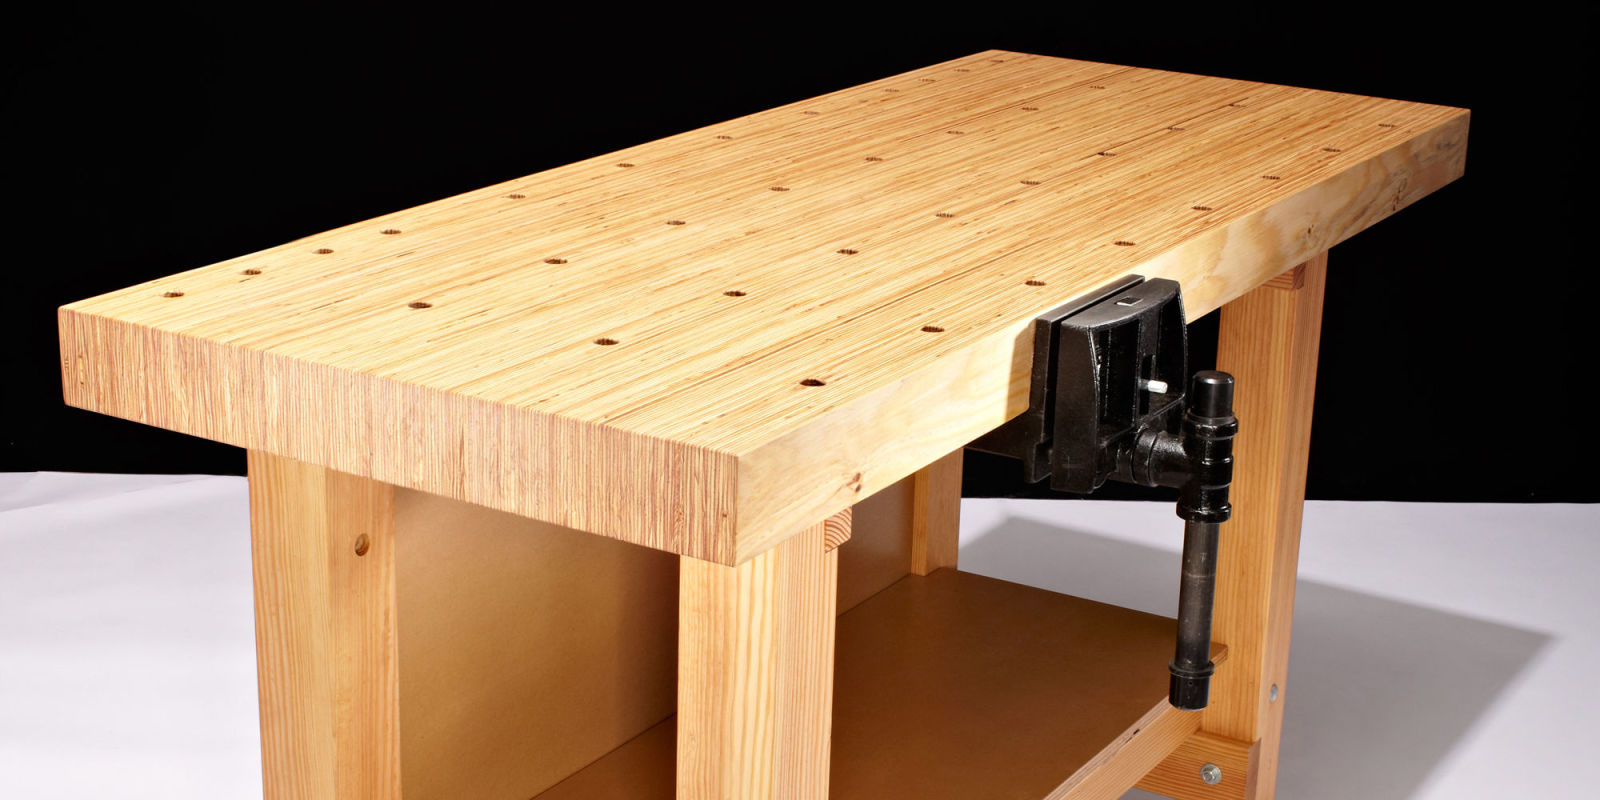 How to build this diy workbench for Build best construction